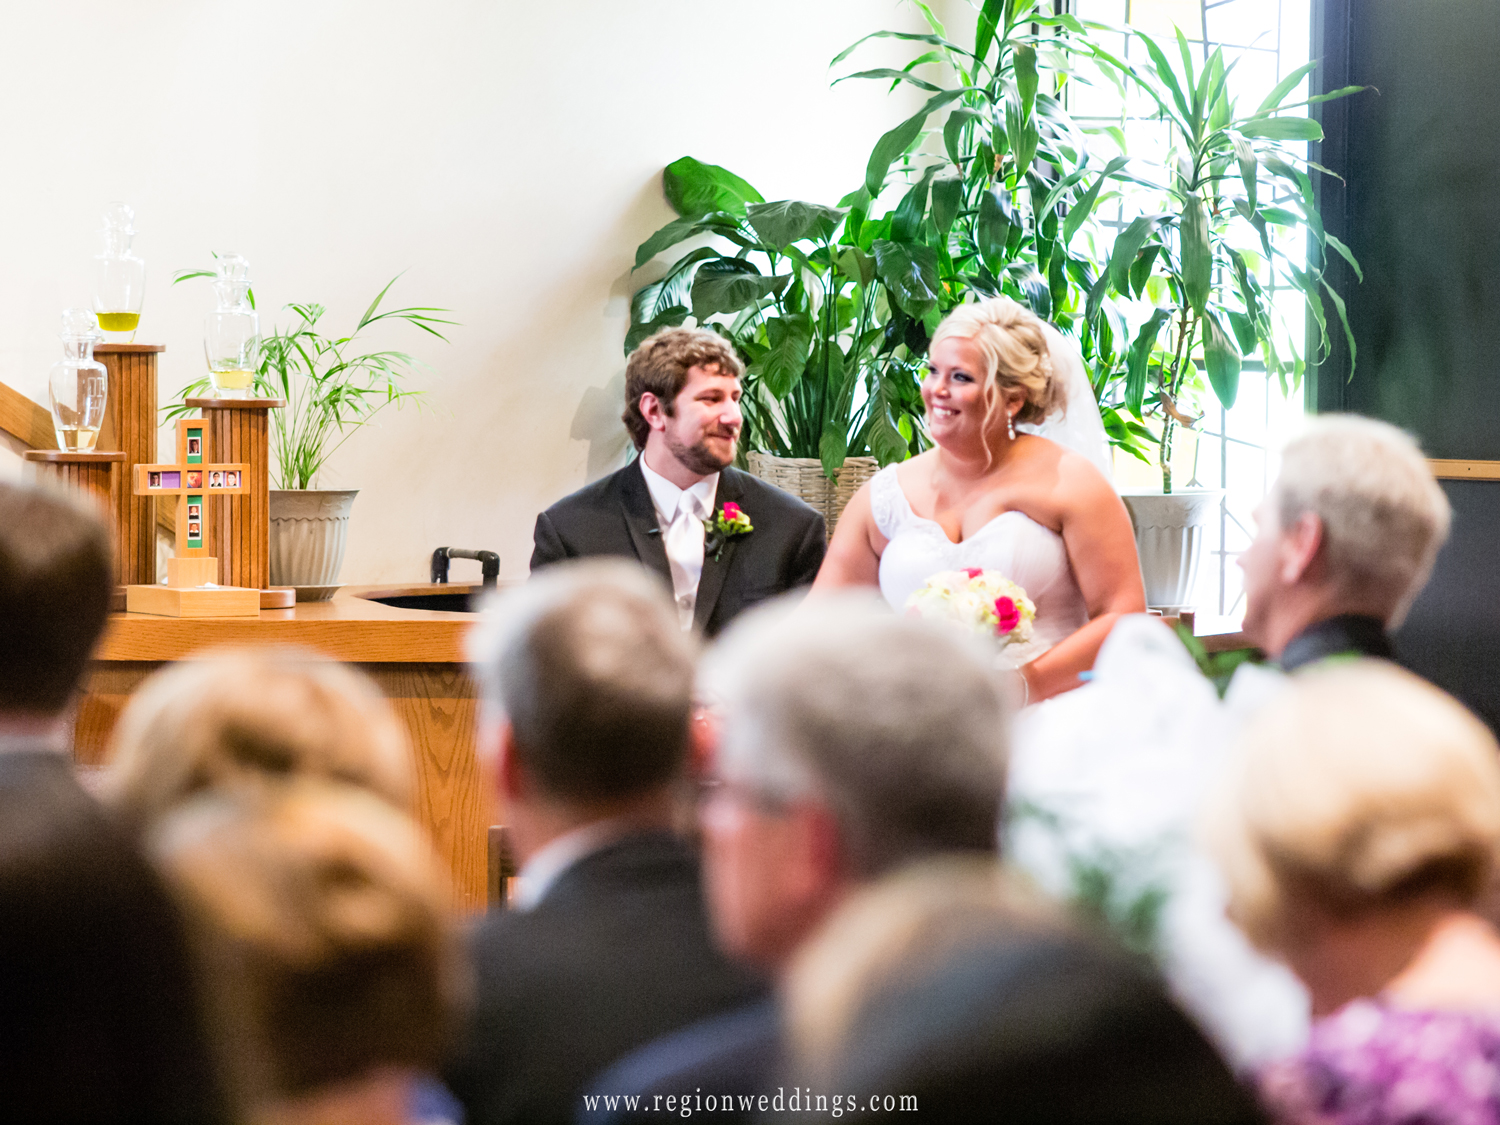 The bride and groom share a laugh during their wedding ceremony in Valparaiso.